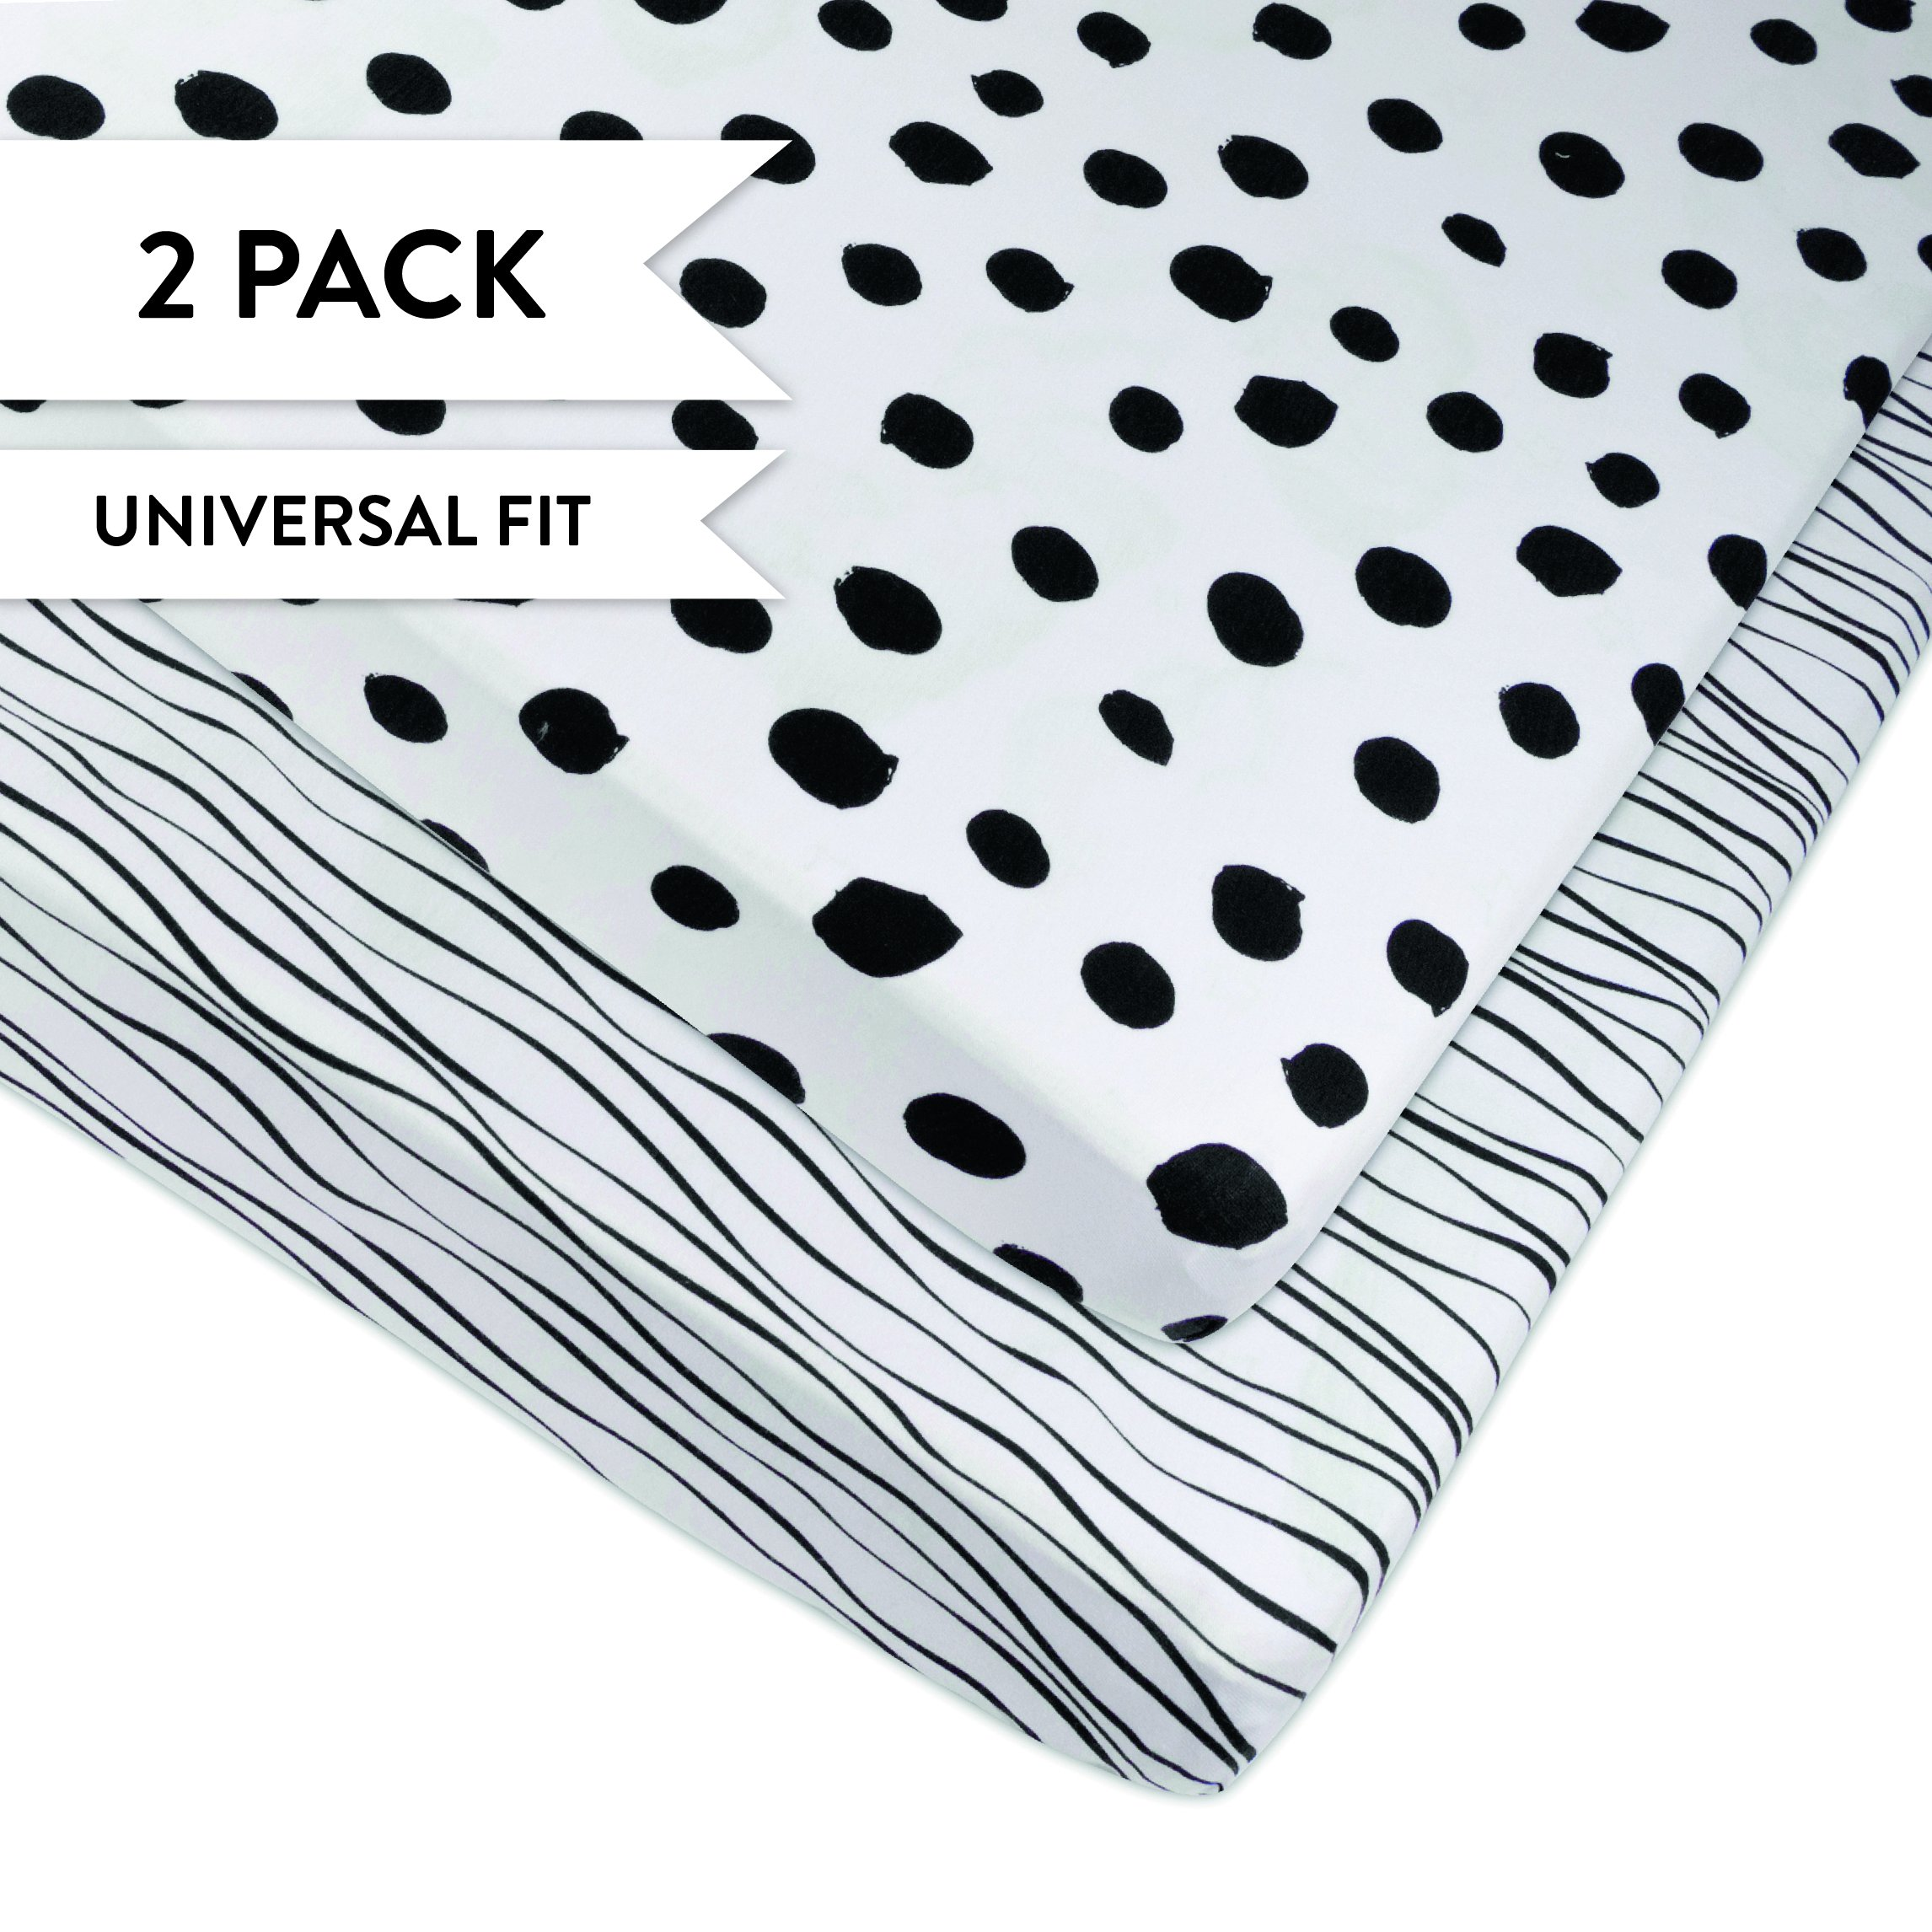 Pack N Play Portable Crib Sheet Set 100% Jersey Cotton 2 Pack - Black Abstract Stripes and Dots